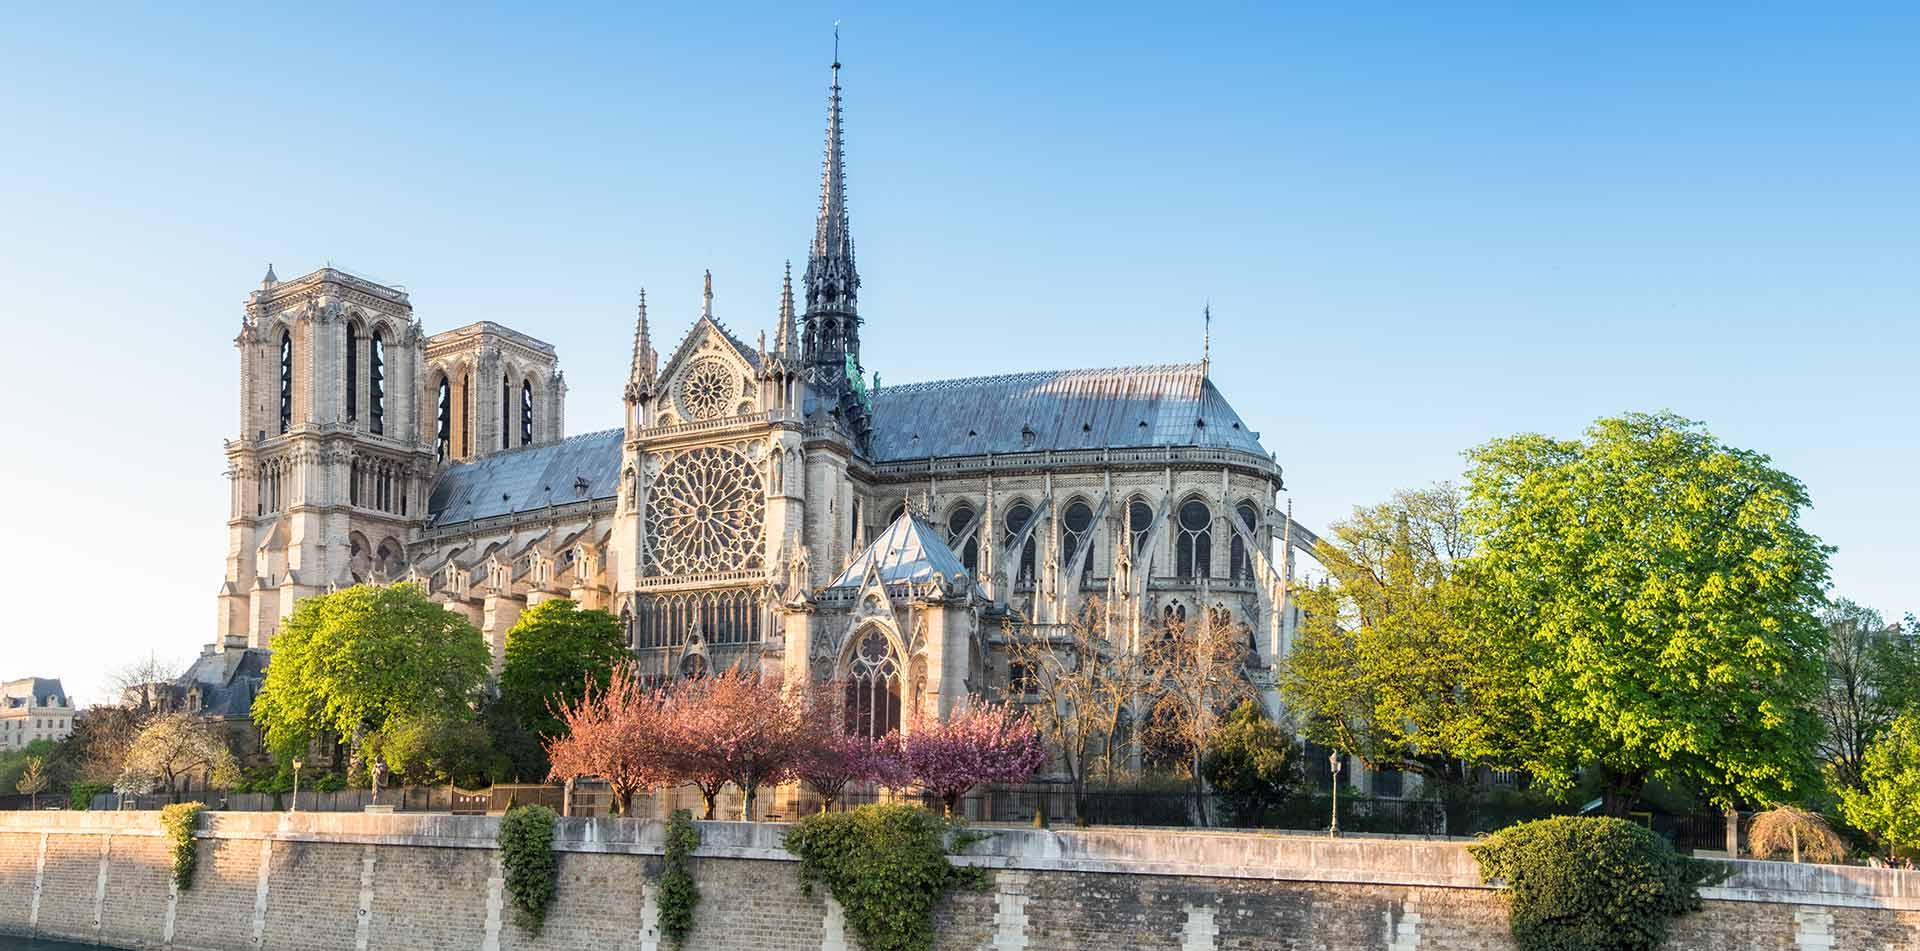 Europe France Paris Notre-Dame Catholic cathedral Gothic architecture colorful trees in bloom - luxury vacation destinations